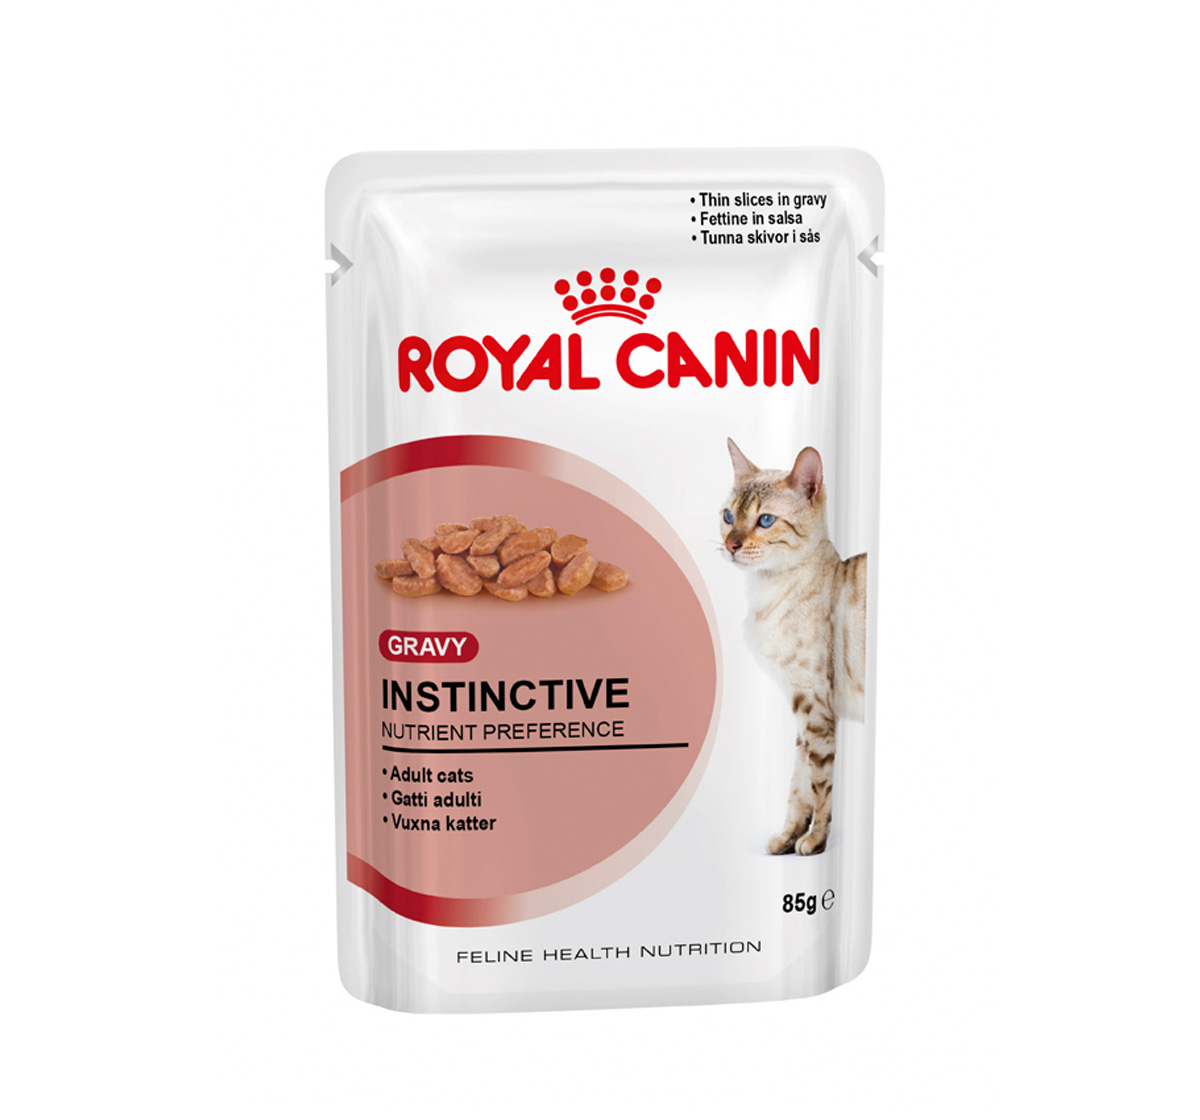 Royal Canin Instinctive - 1.02 Kg